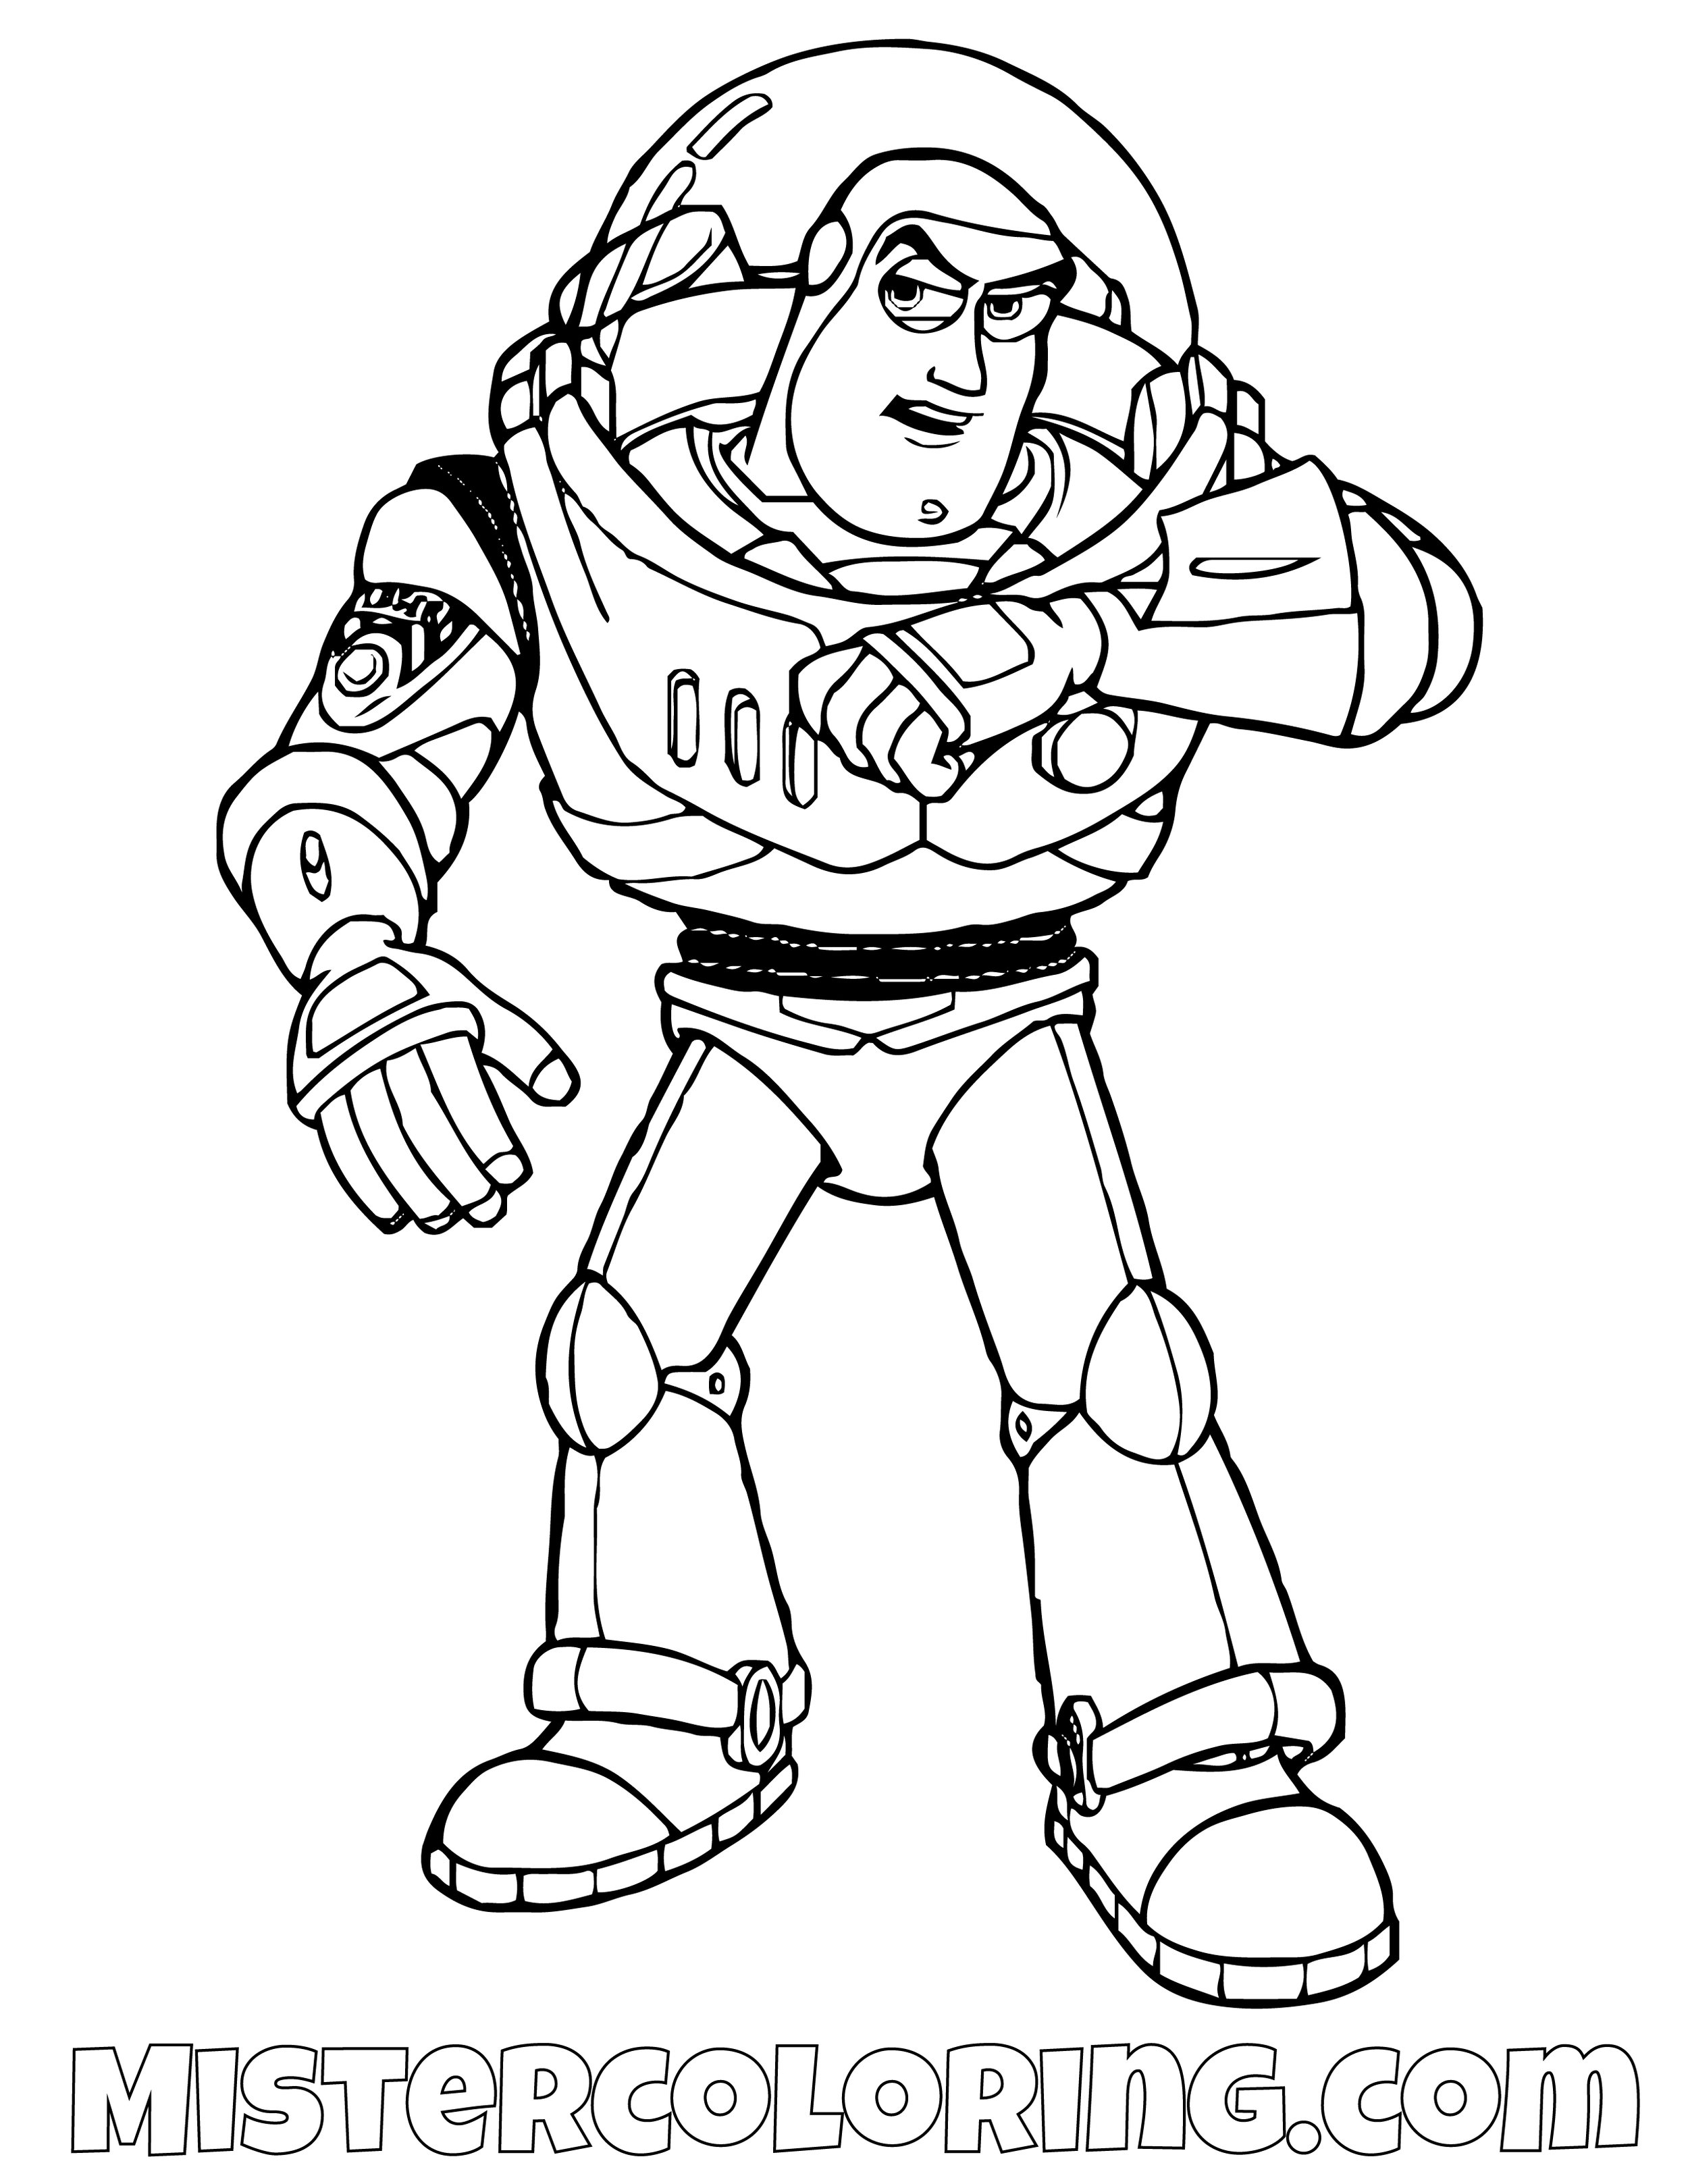 Buzz Lightyear Talking To His Scouter Toy Story Coloring Page